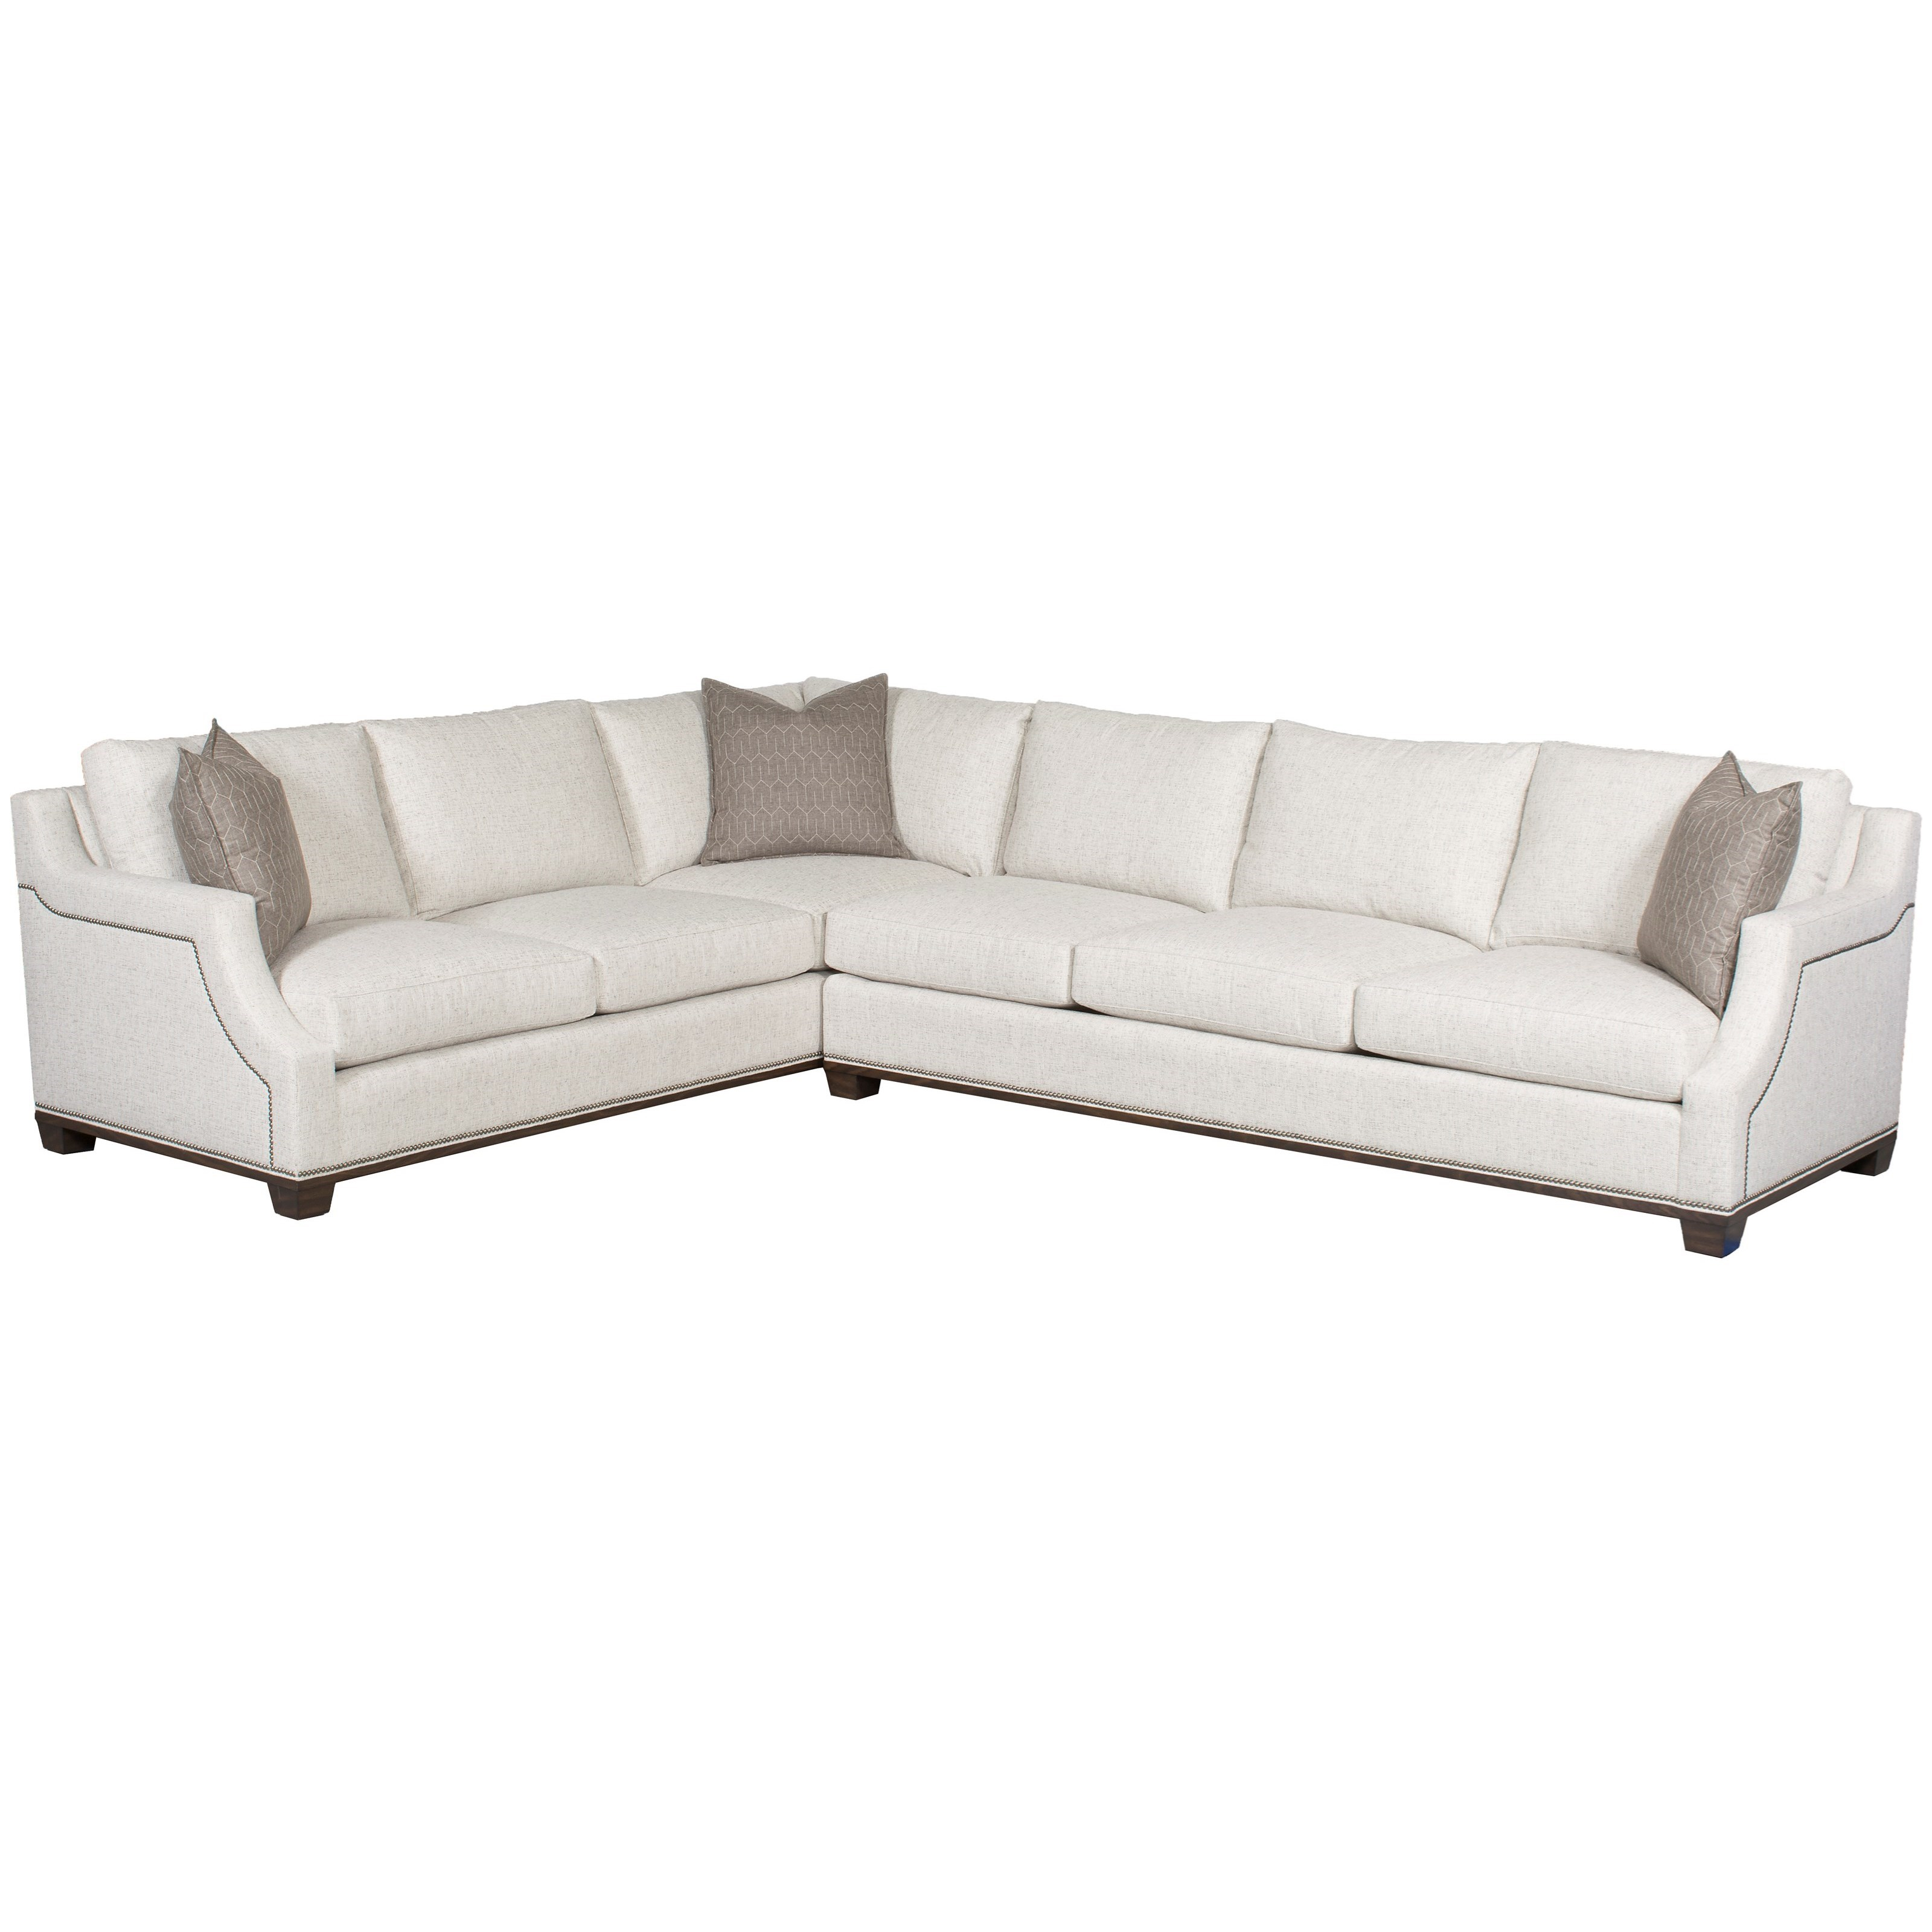 Michael Weiss - Abingdon 2 Pc Customizable Sectional Sofa by Vanguard Furniture at Baer's Furniture